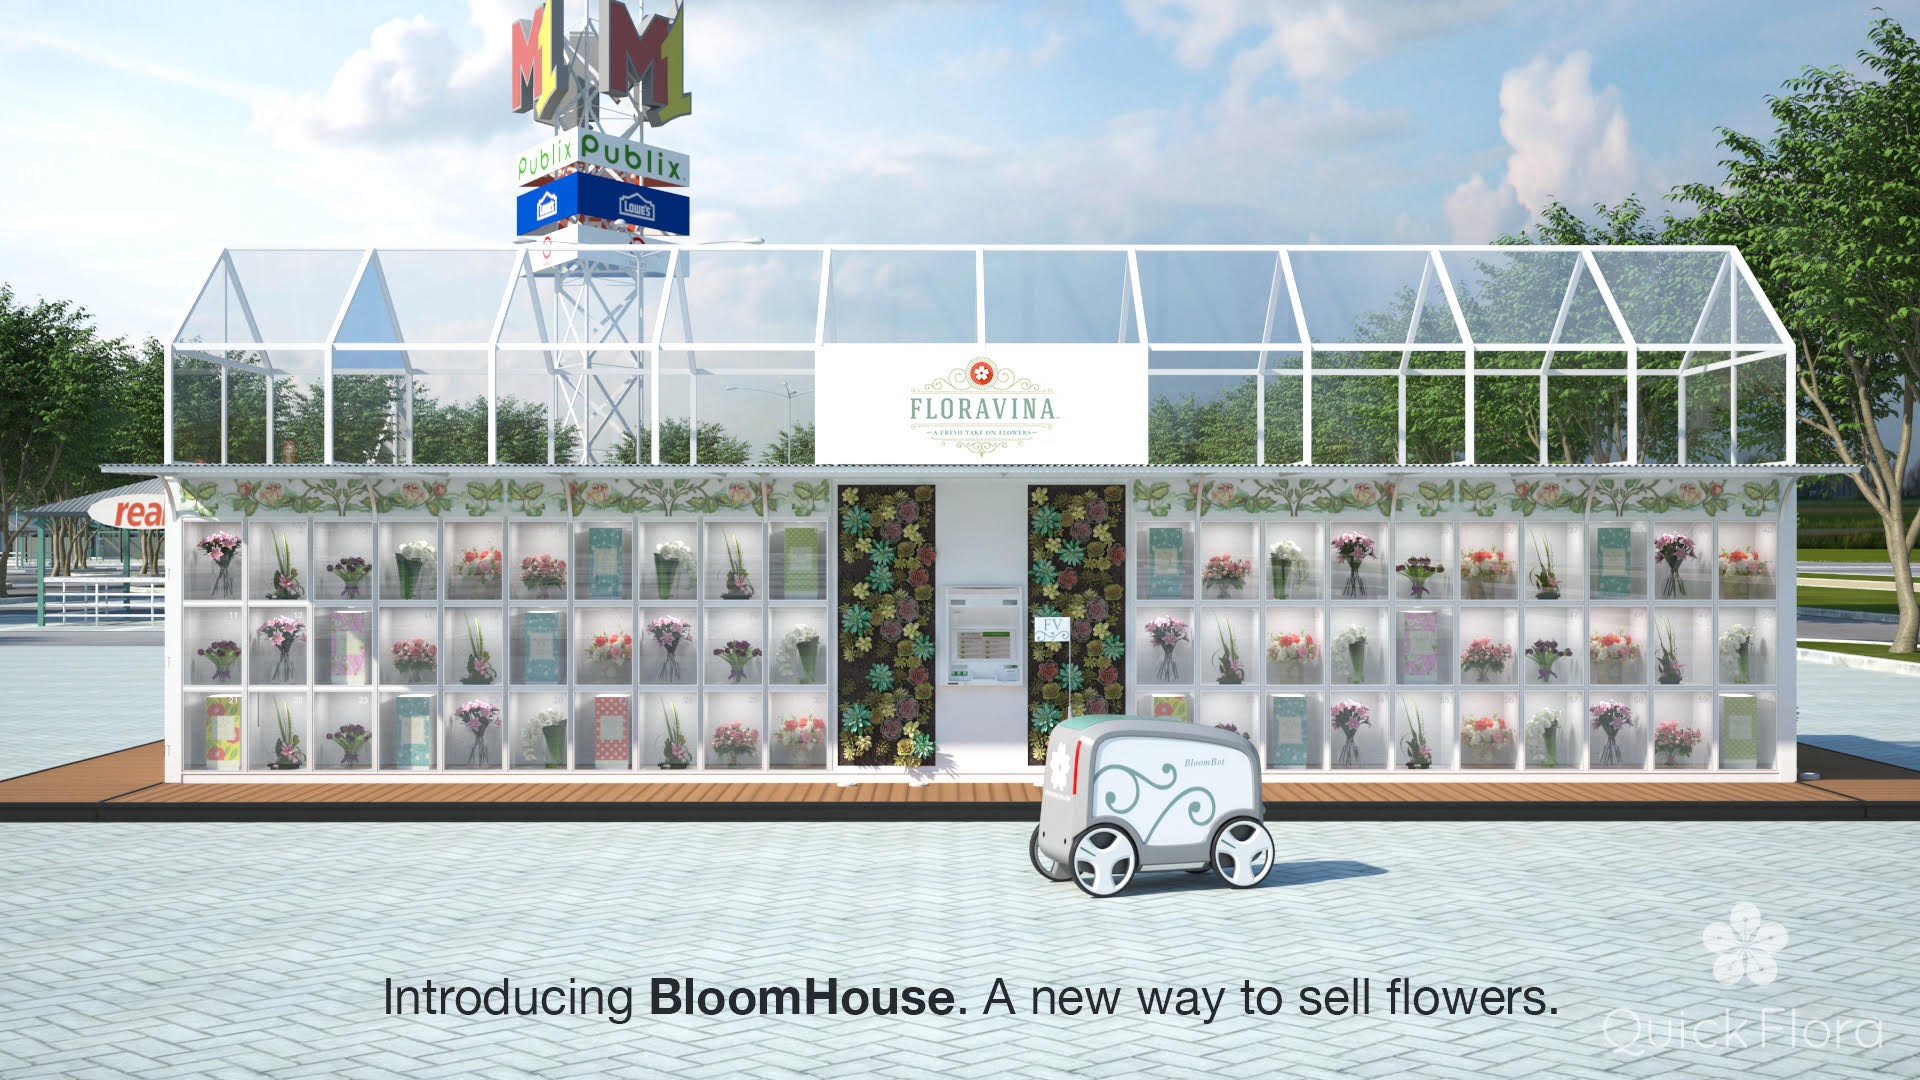 Bloom-house.jpg